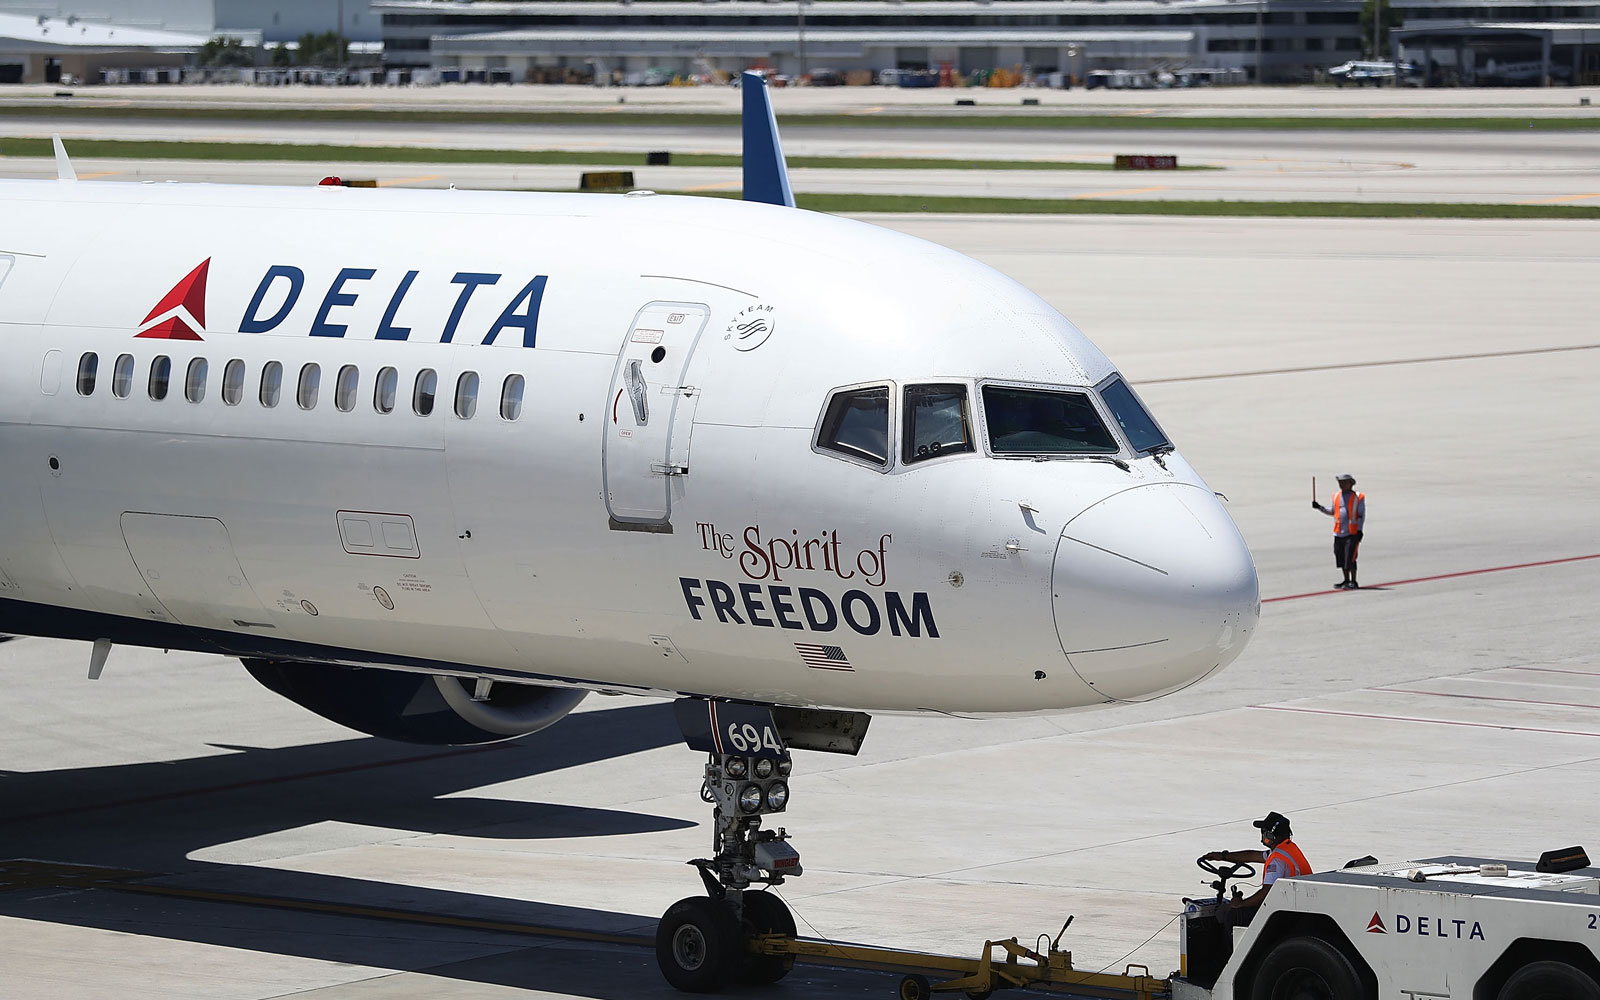 Delta Switches Up Snacks, Might Bring Back Free Meals to